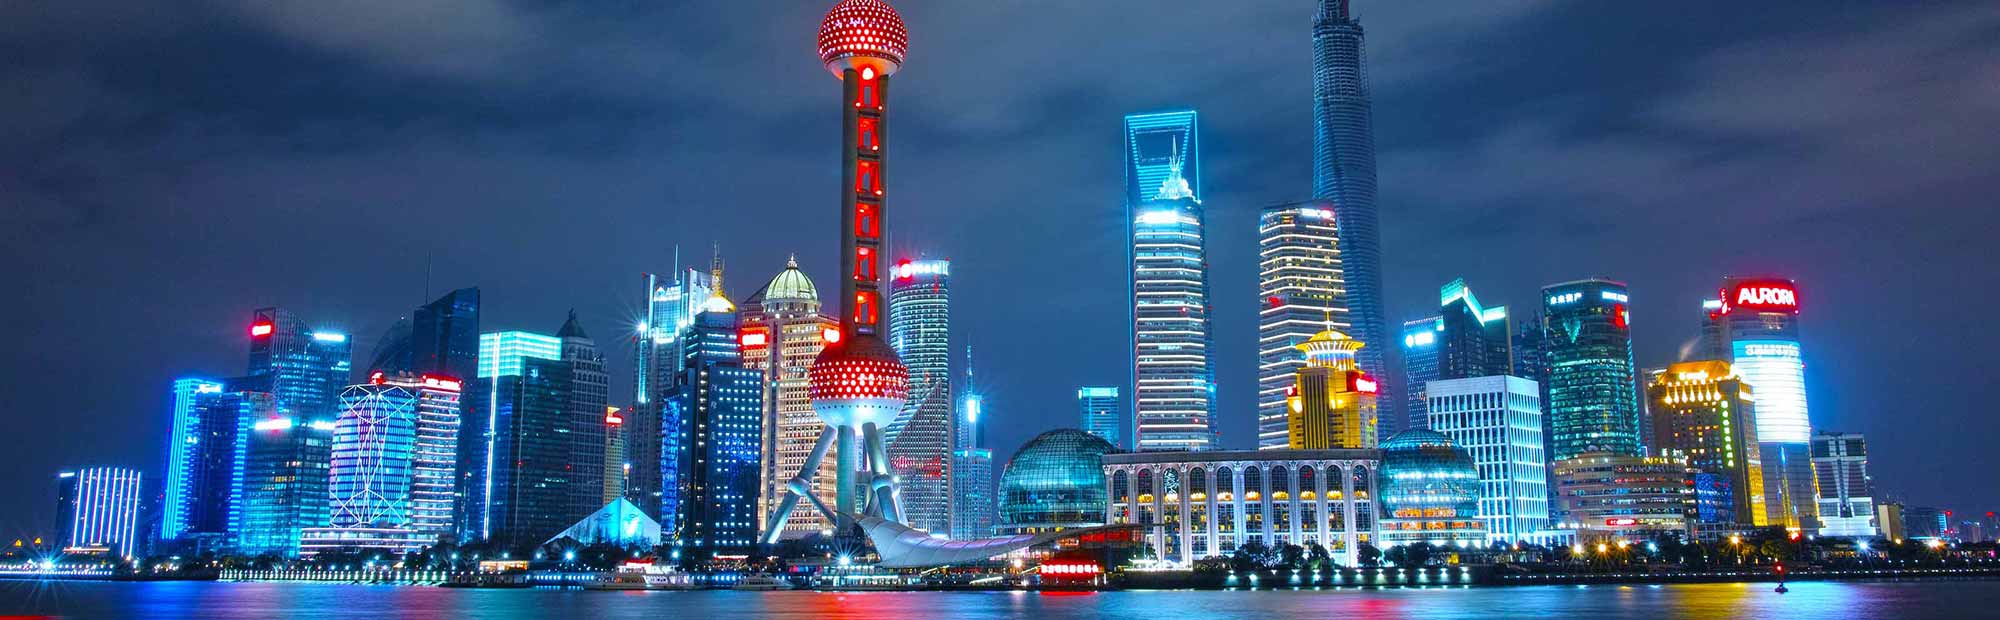 A cityscape image of Shanghai at night.